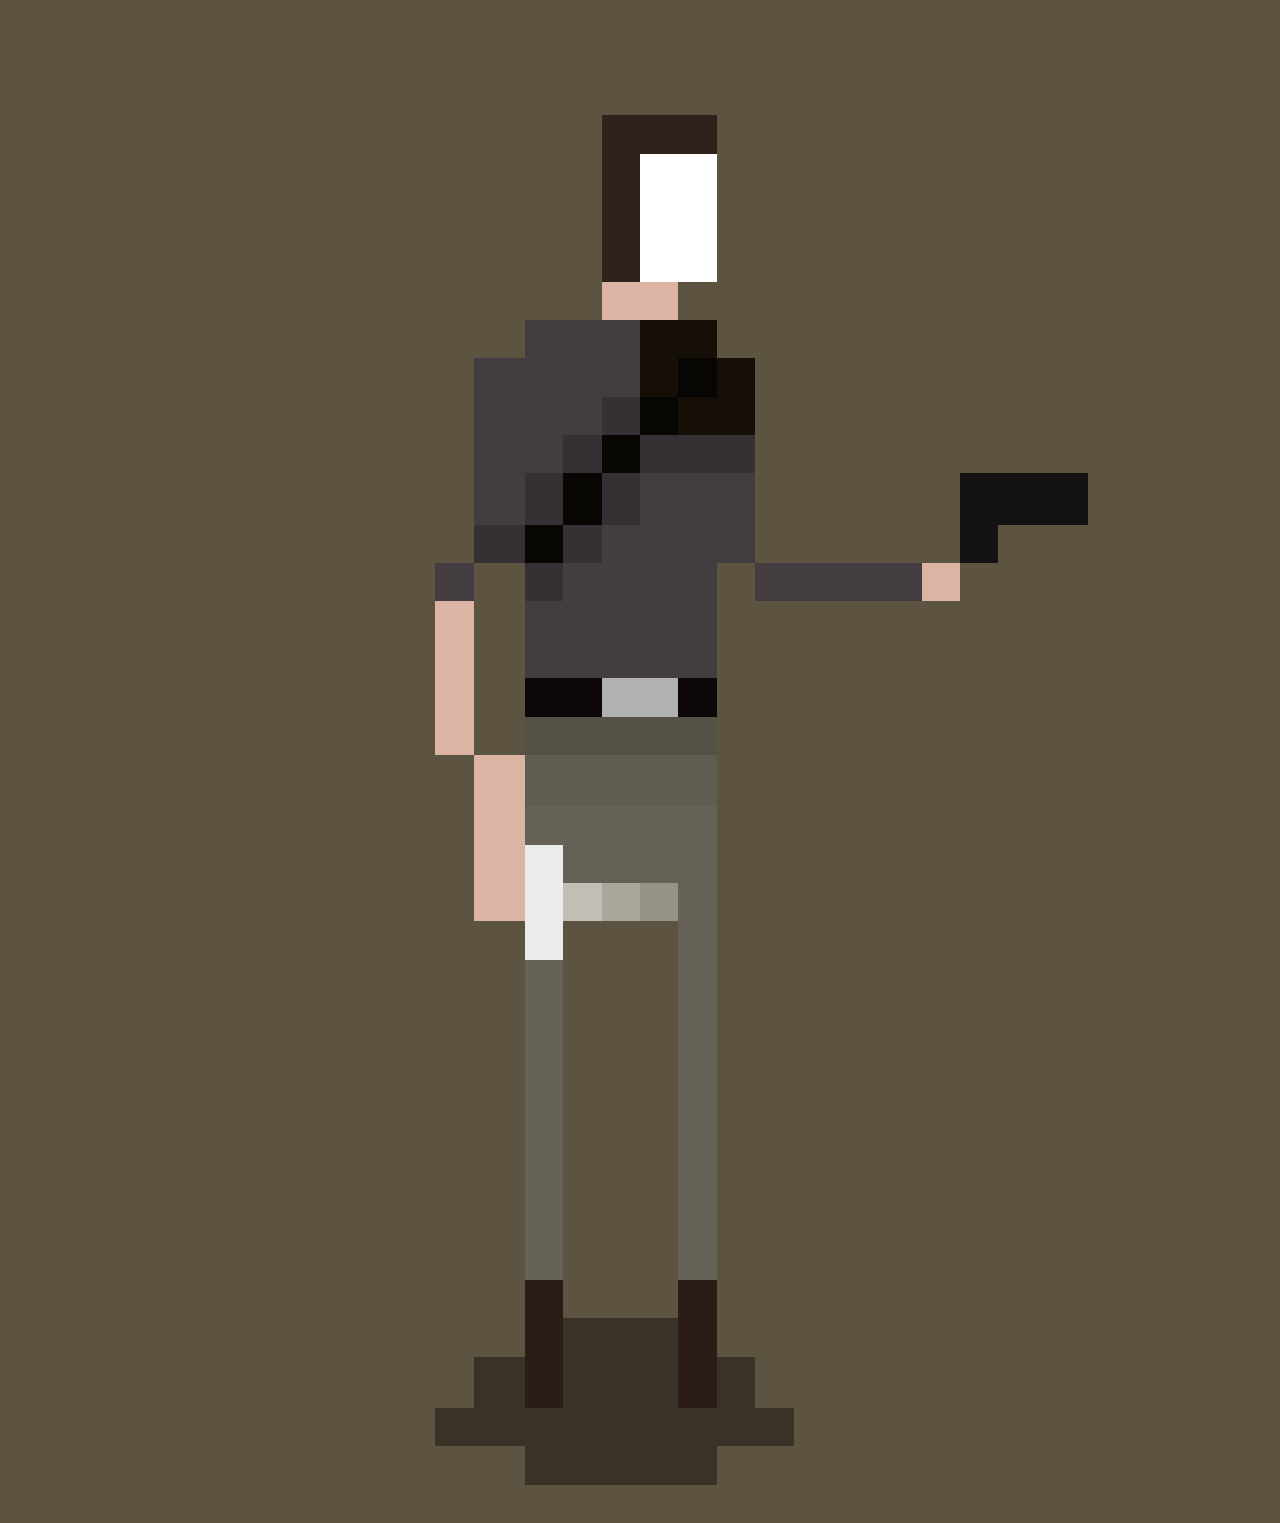 """Robber"" For A Game I'm Making"